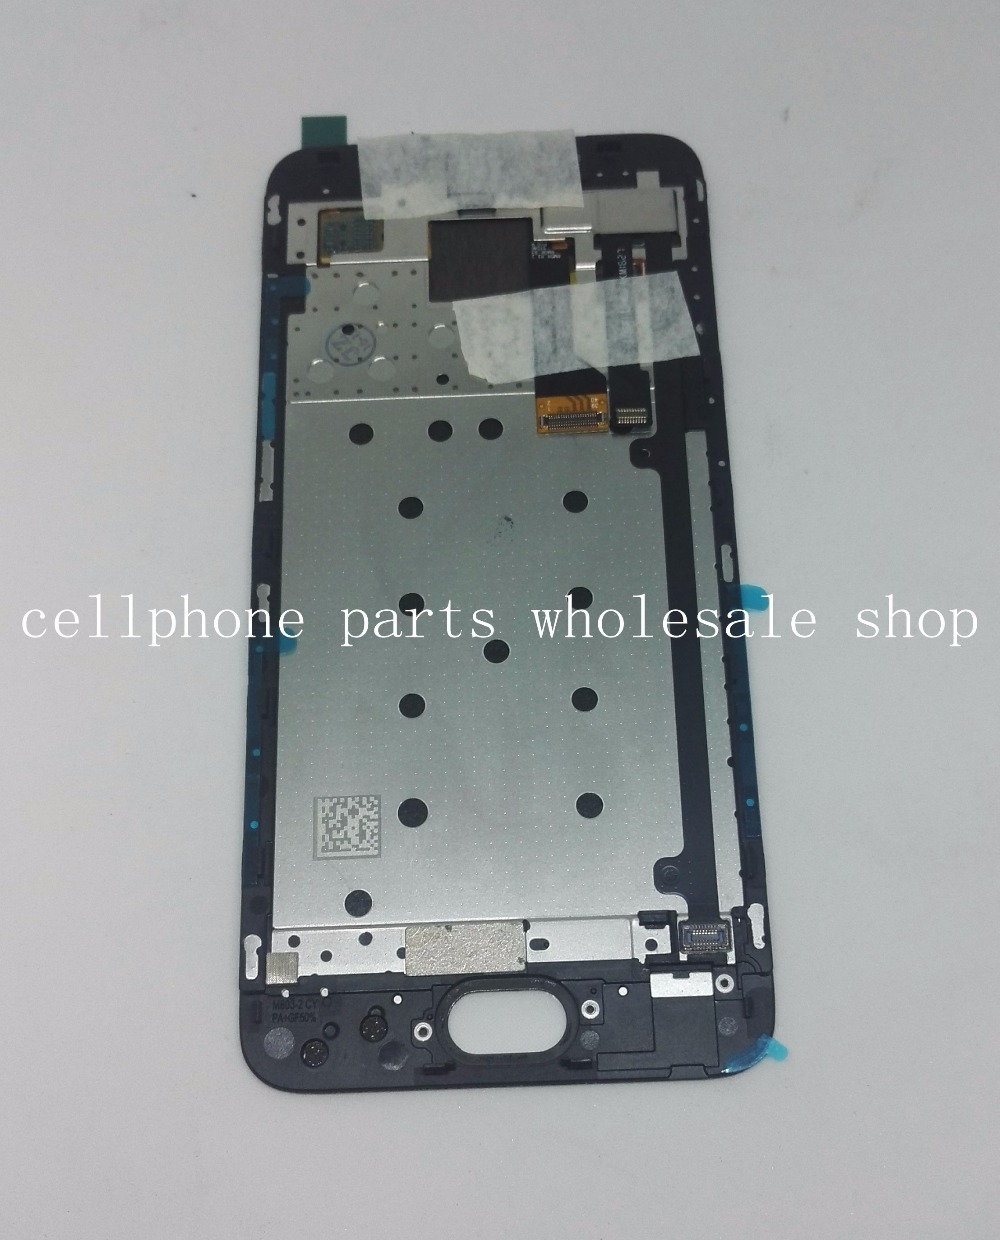 5.2Amoled For Meizu Pro 6 Lcd Display with Touch glass Digitizer Frame assembly replacement parts